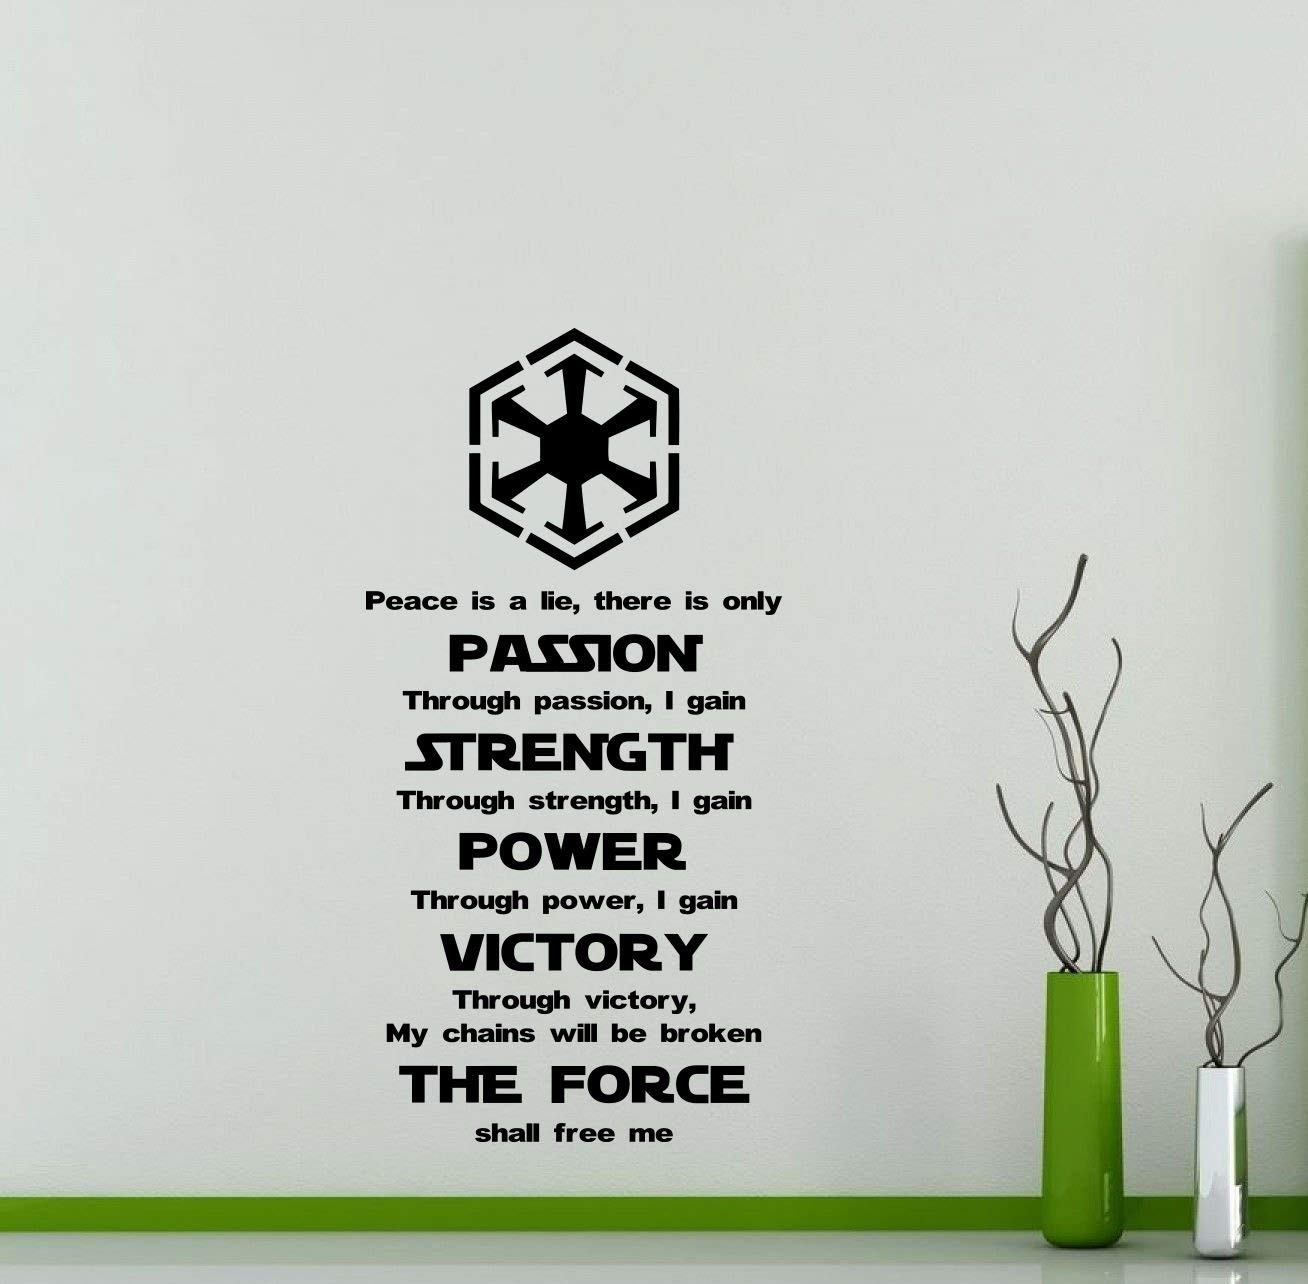 Star Wars Wall Vinyl Decal Sith Code Passion Strength Star Wars Quotes On Losing A Loved One 1308x1284 Wallpaper Teahub Io